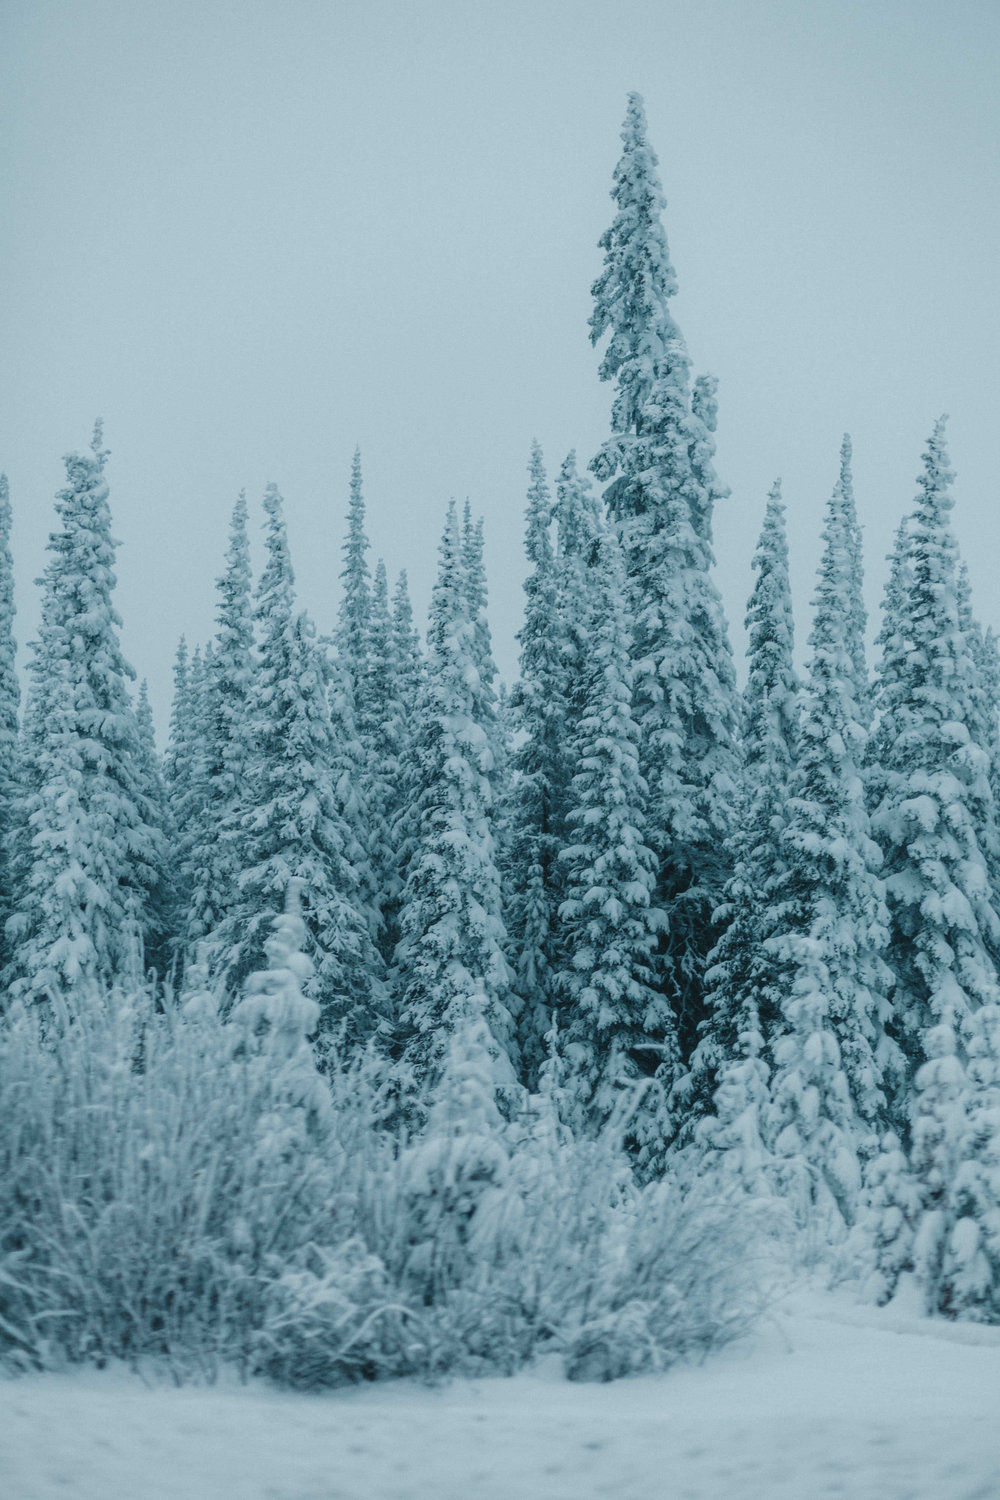 15 | Winter Wonderland - With a certain lack of snow in Vancouver and surrounding, I found myself shooting this on our to Kelowna, beginning of December. We took the Yellowhead highway, up the mountain and found ourselves in this winter wonderland.British Columbia, December 2018.